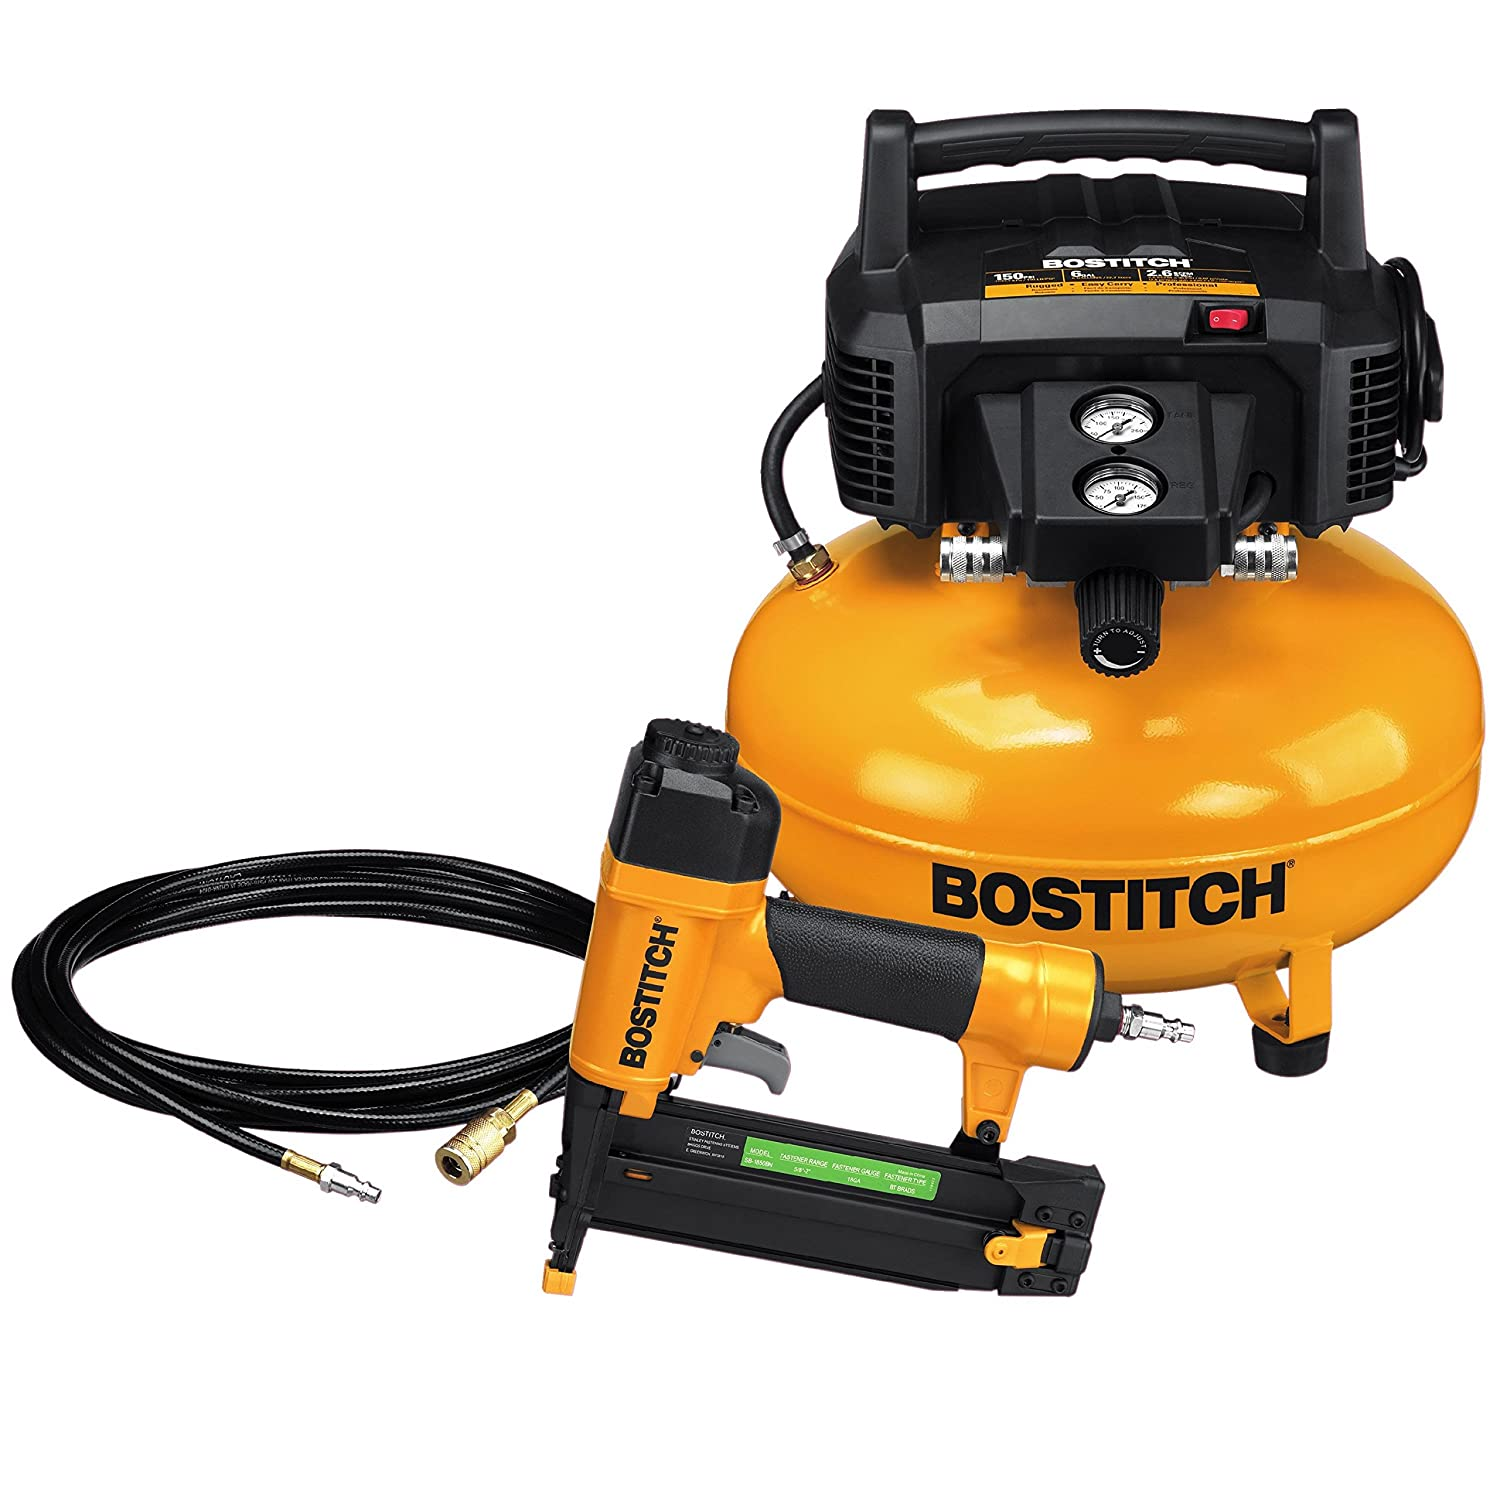 BOSTITCH BTFP1KIT 1-Tool and Compressor Combo Kit